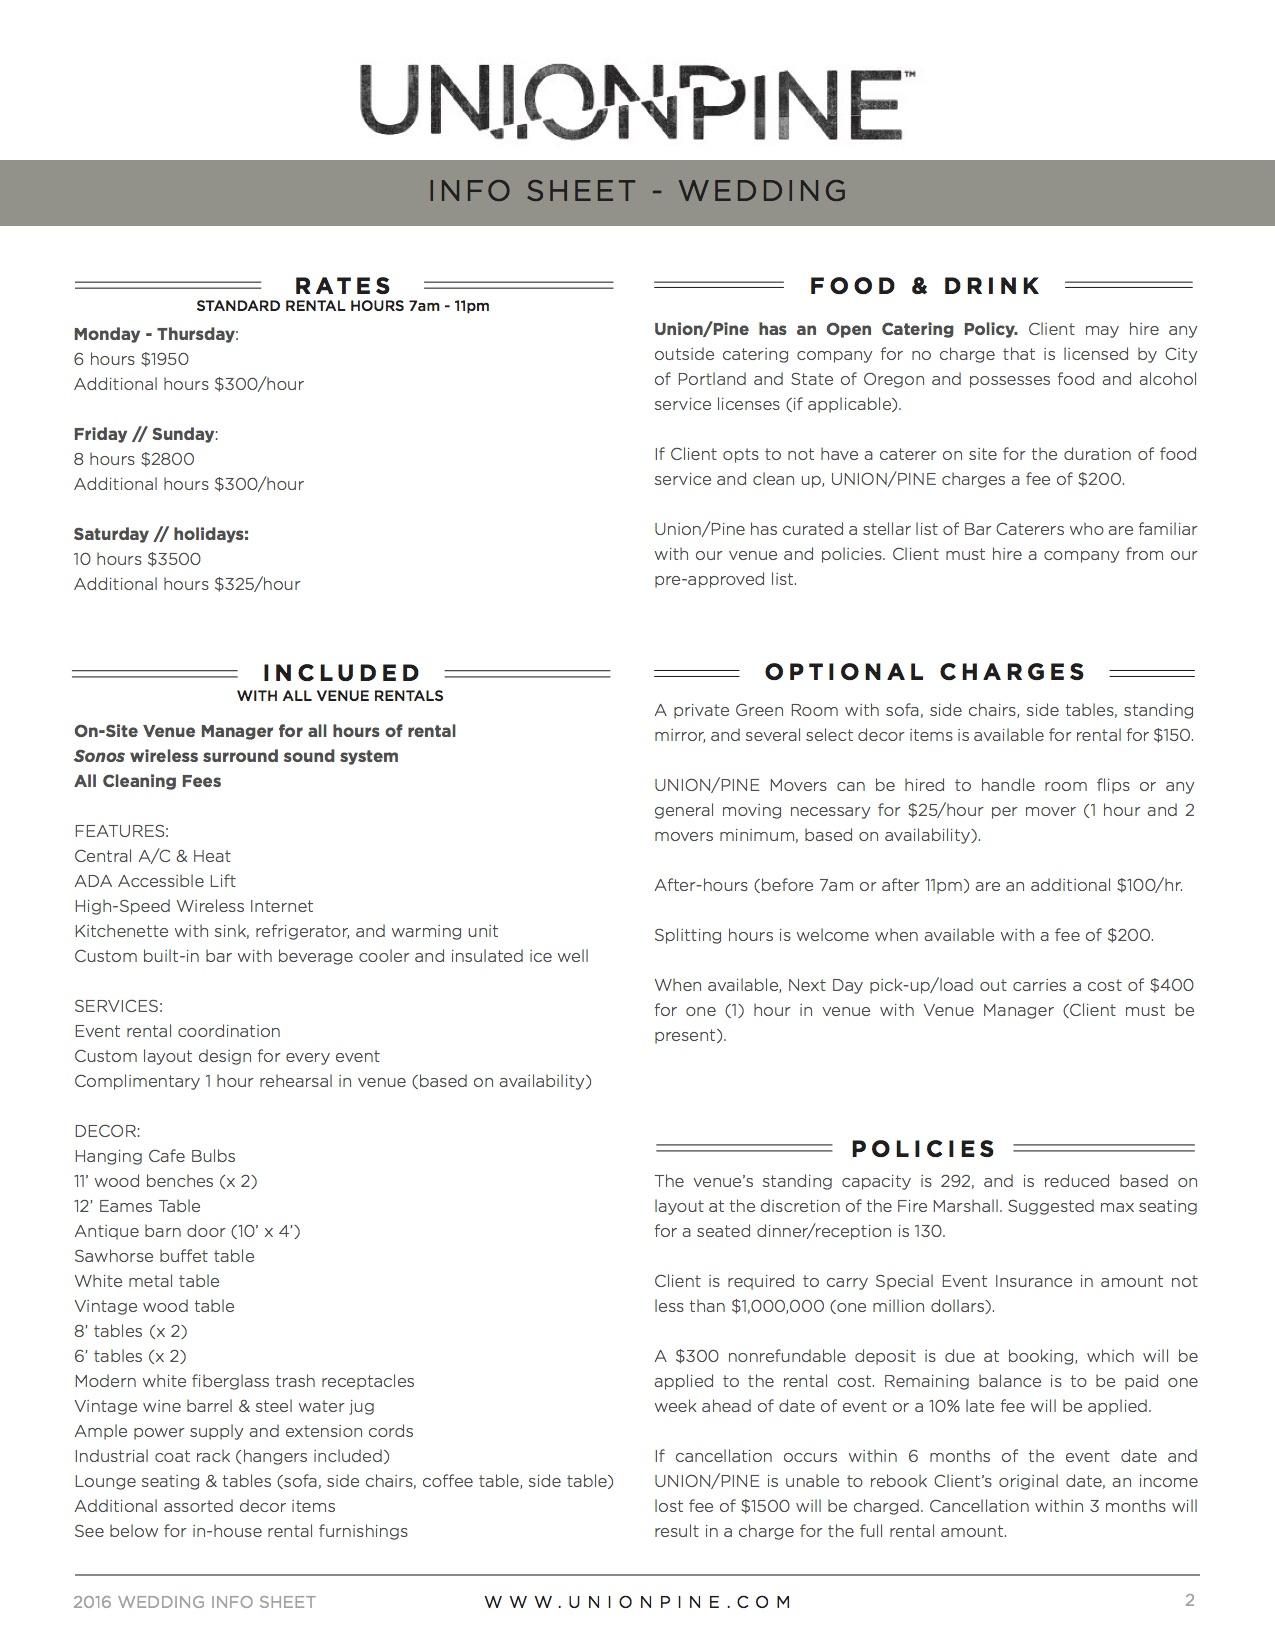 UP_Info Sheet Wedding PACKET PAGES.jpg